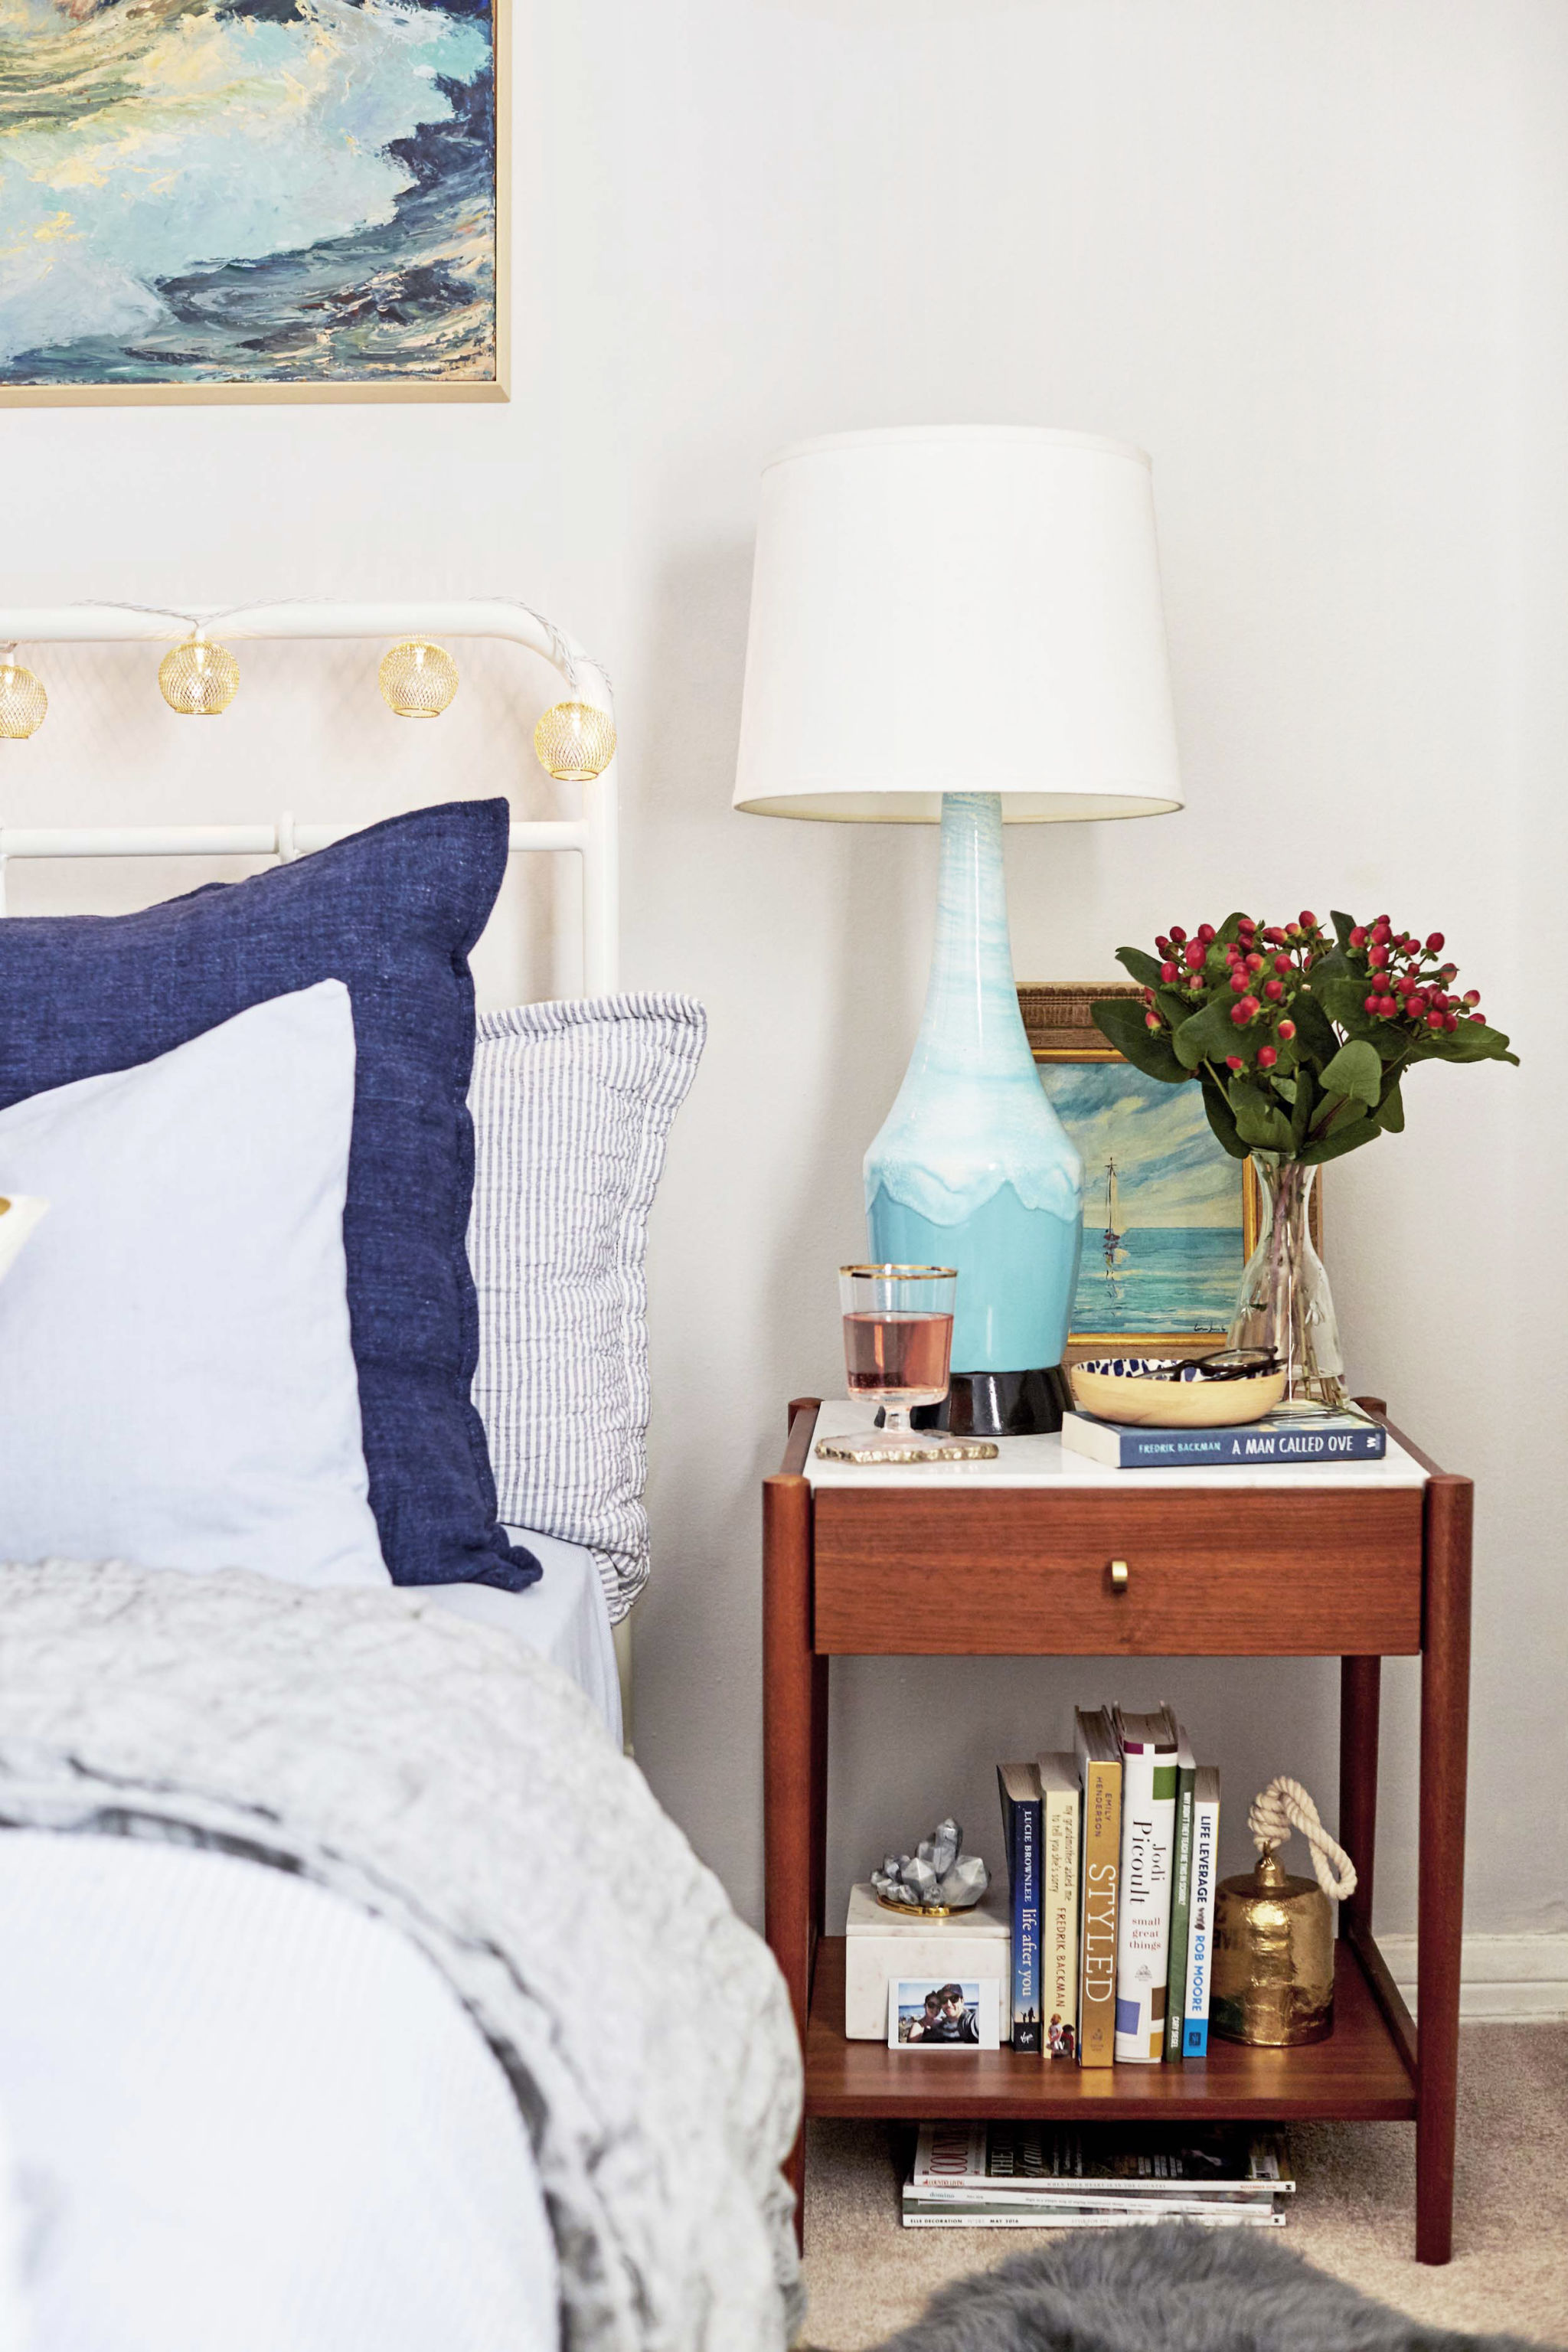 GINNY_MACDONALD_HOLIDAY_BEDROOM_10